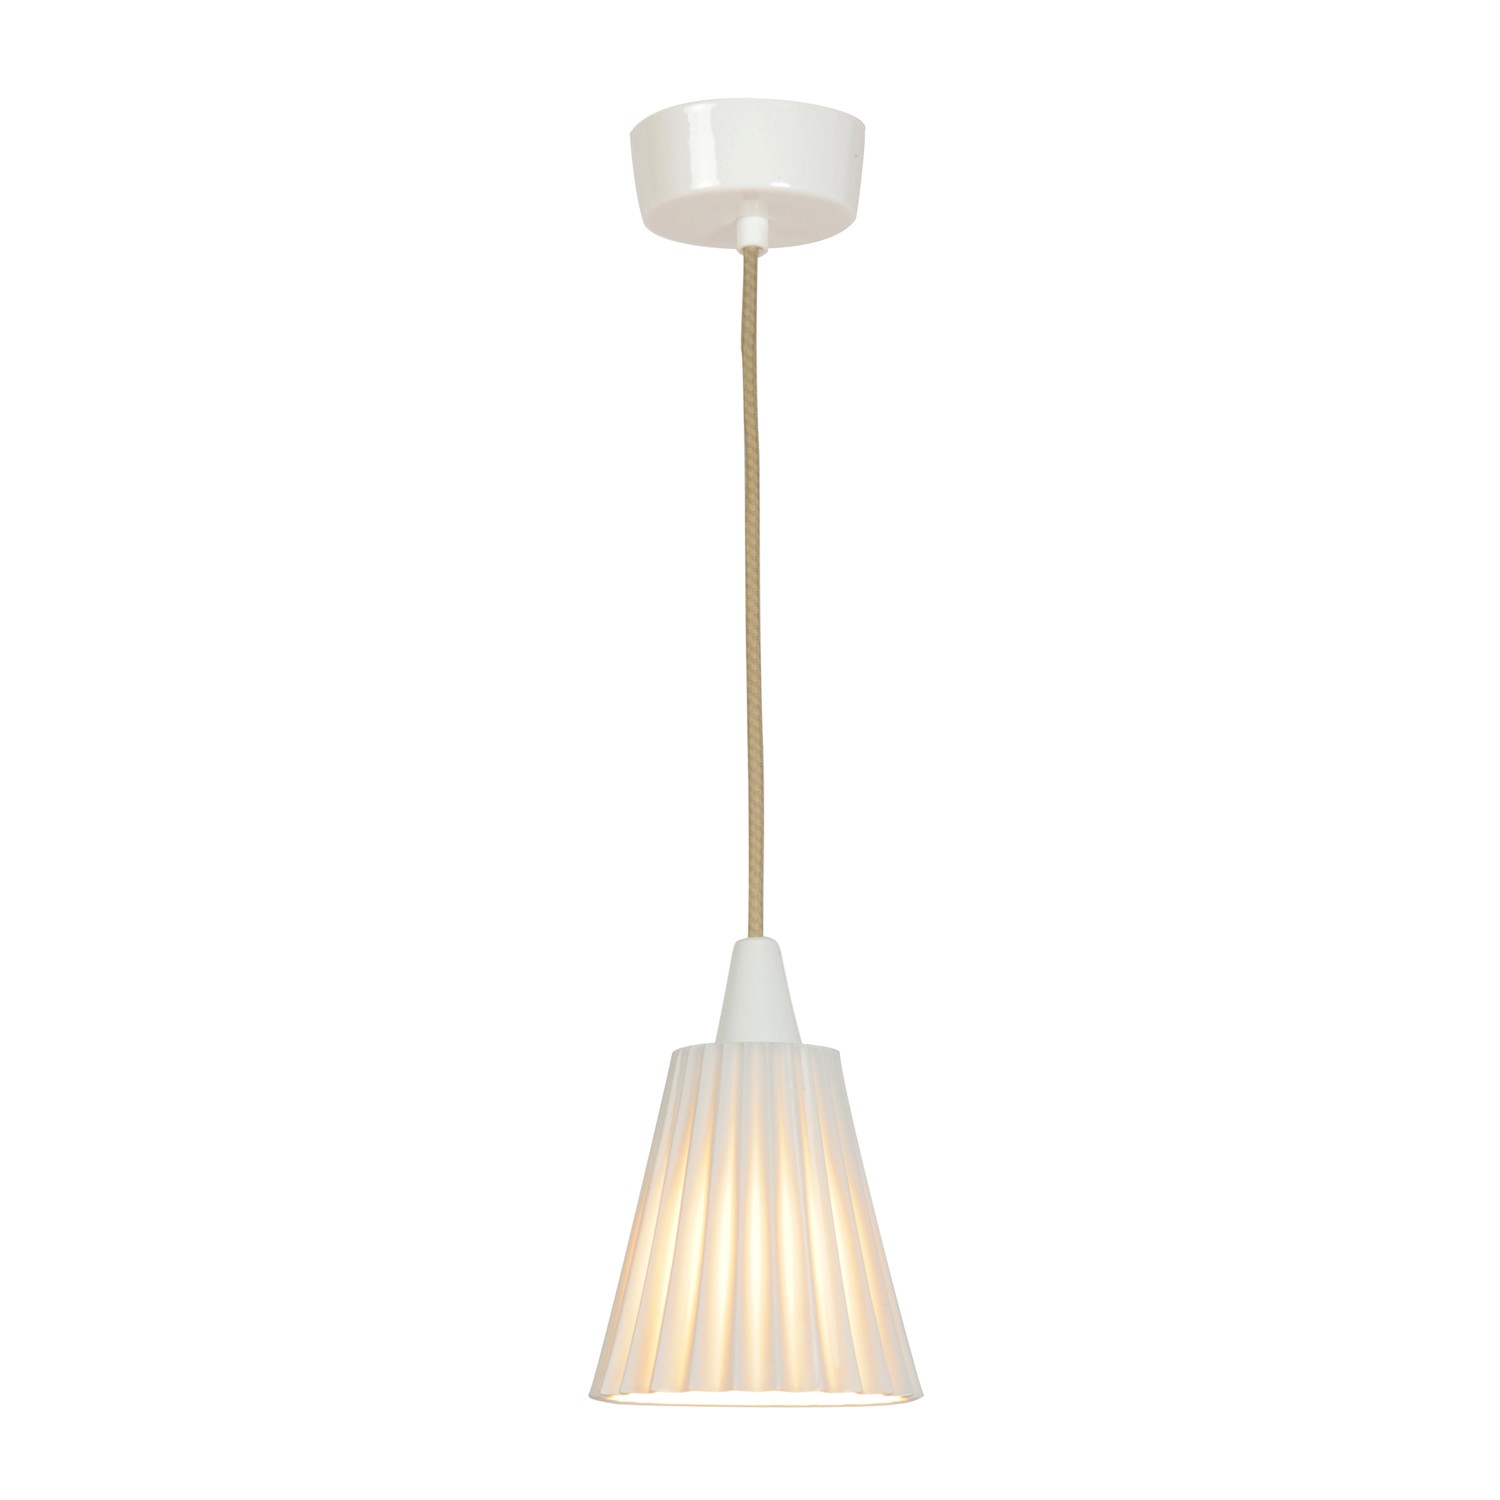 Hector Pleat Pendant Light Medium